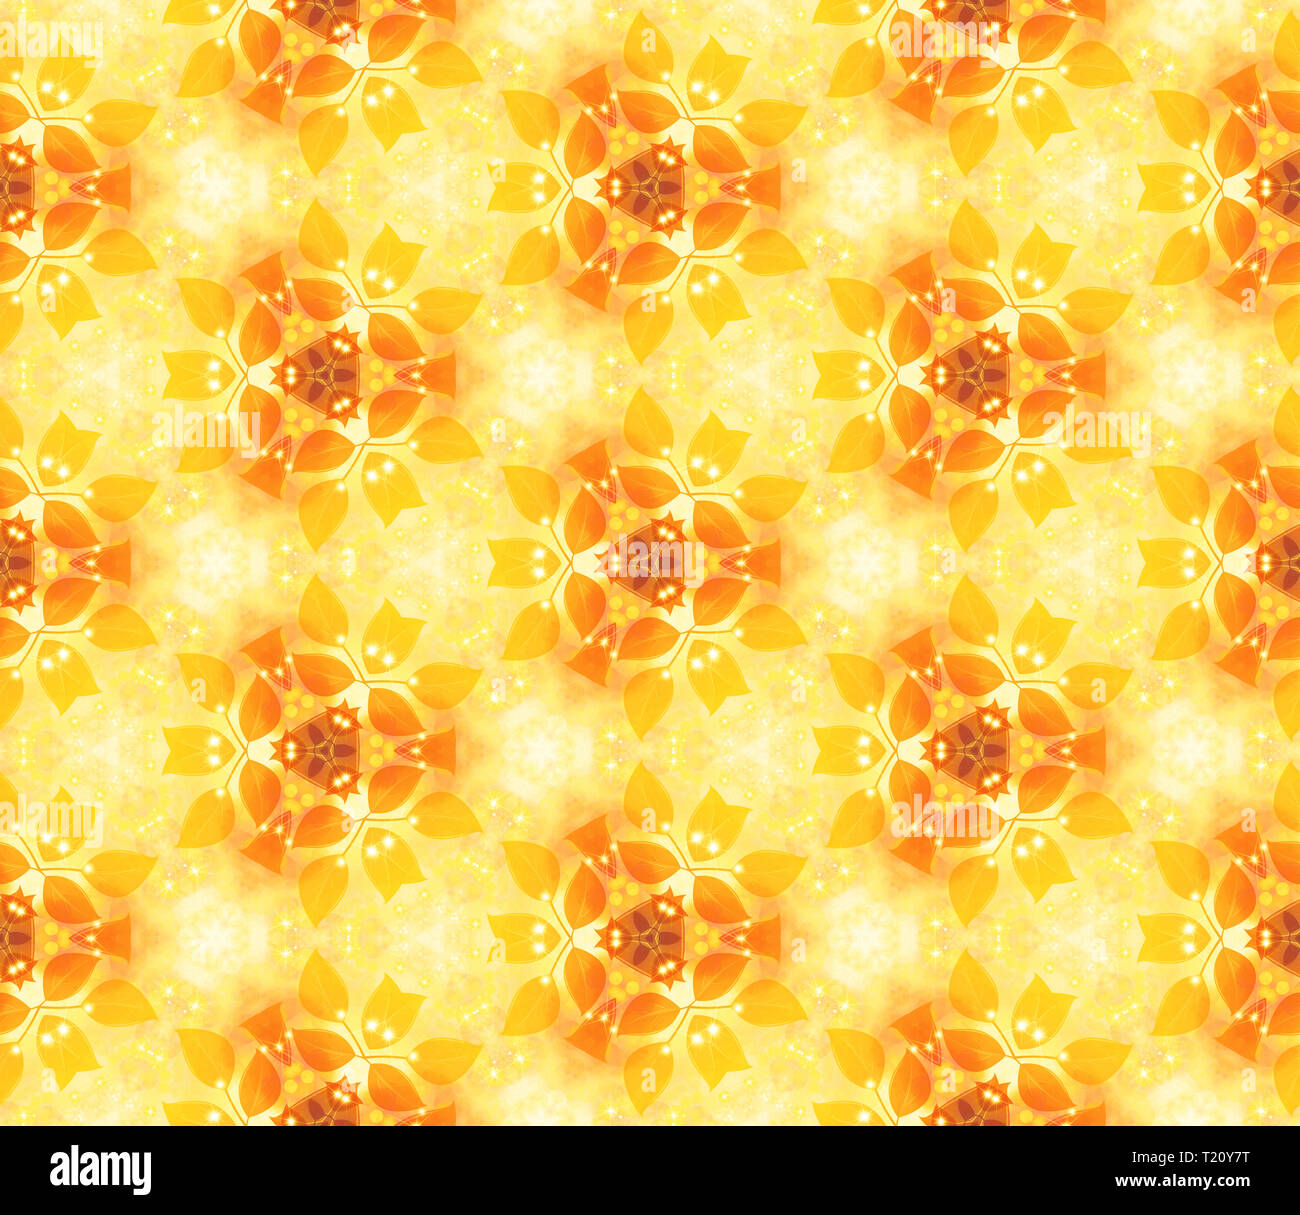 Seamless air pattern, gentle leaves, yellow. Vegetable wall-paper in style of a fantasy. A romantic background for design, packing paper, greeting car - Stock Image